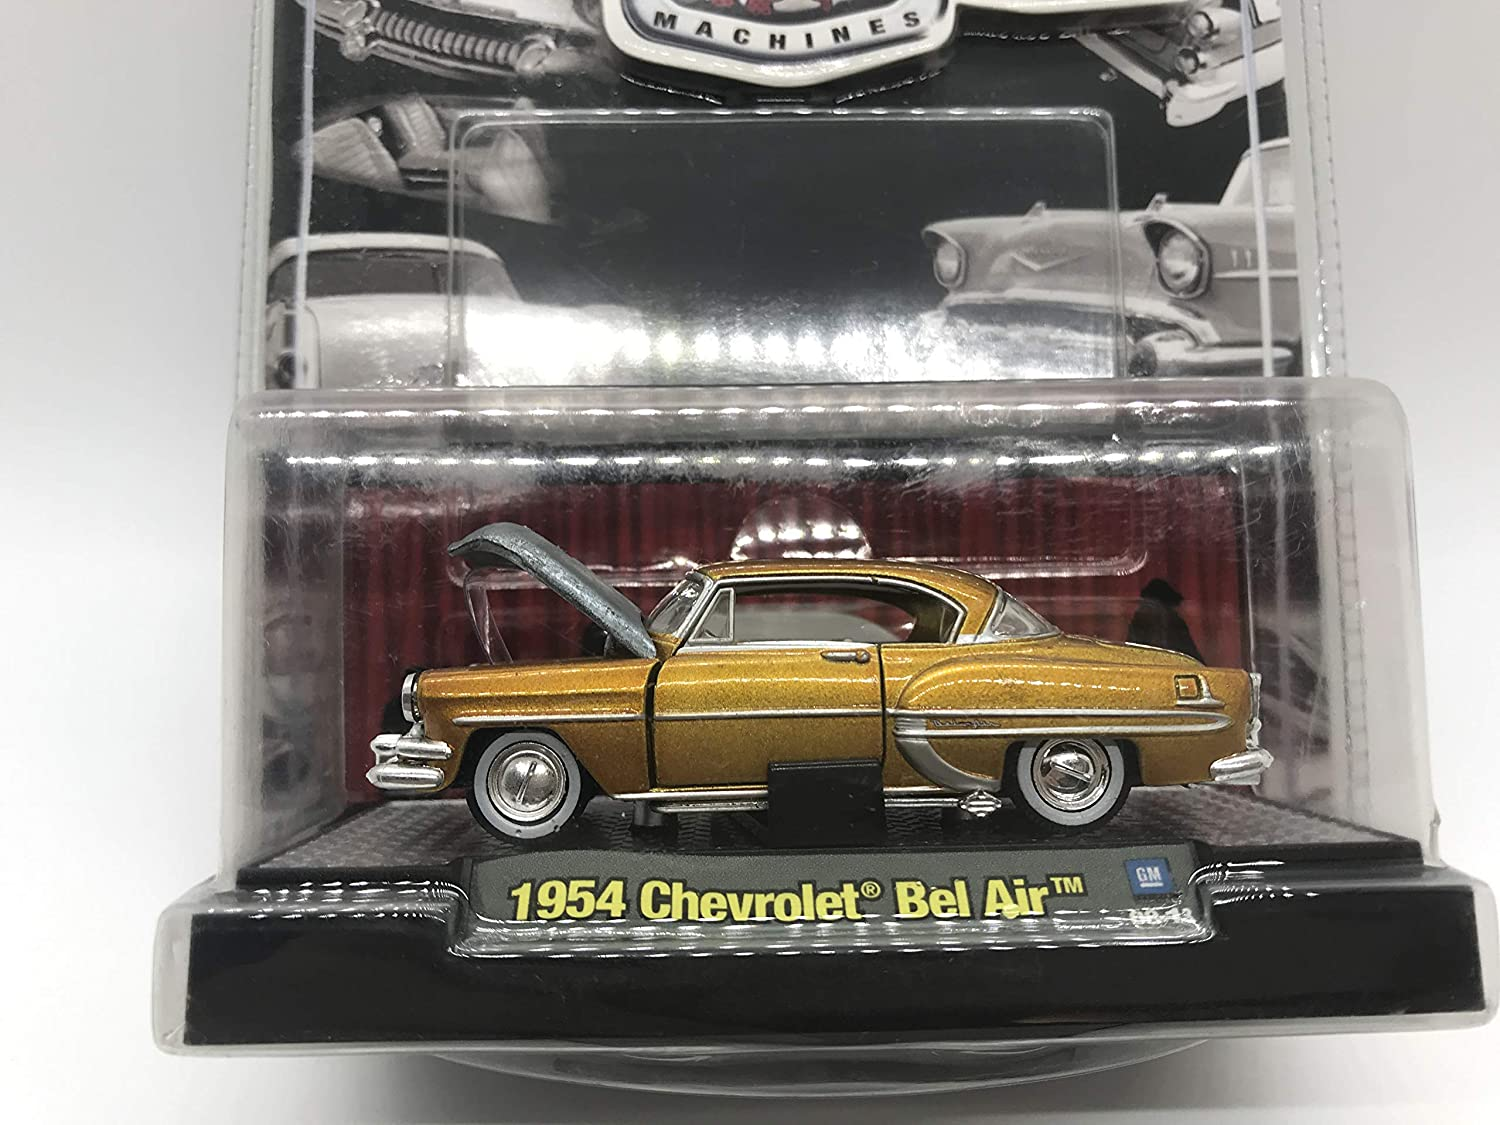 Details Like NO Other! M2 Machines by M2 Collectible Auto-Thentics 1954 Chevy Bel Air 08-13 Gold wear on Yellowish Blister is at its Normal Condition